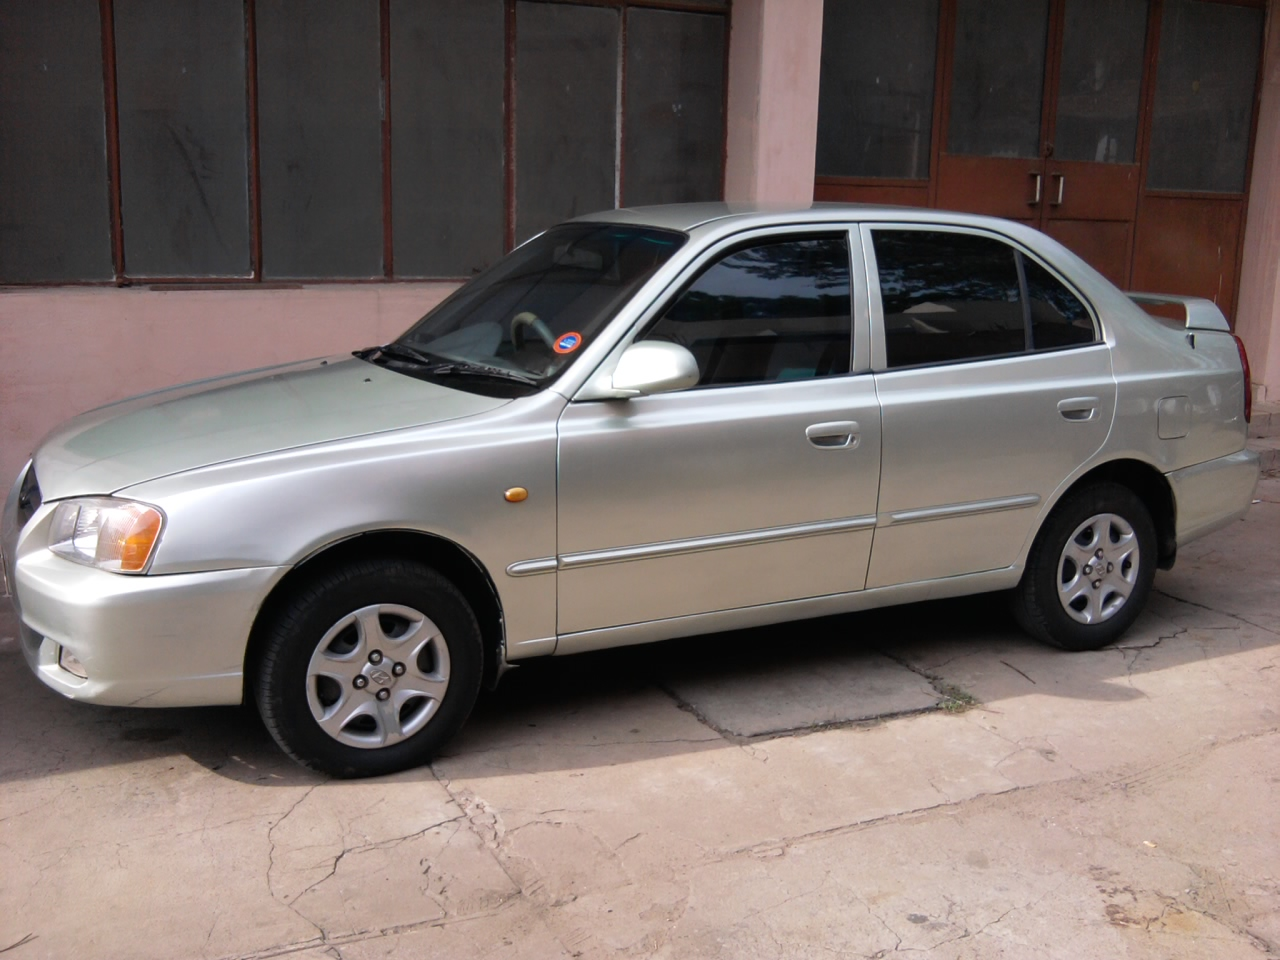 2003 hyundai accent ii pictures information and specs. Black Bedroom Furniture Sets. Home Design Ideas